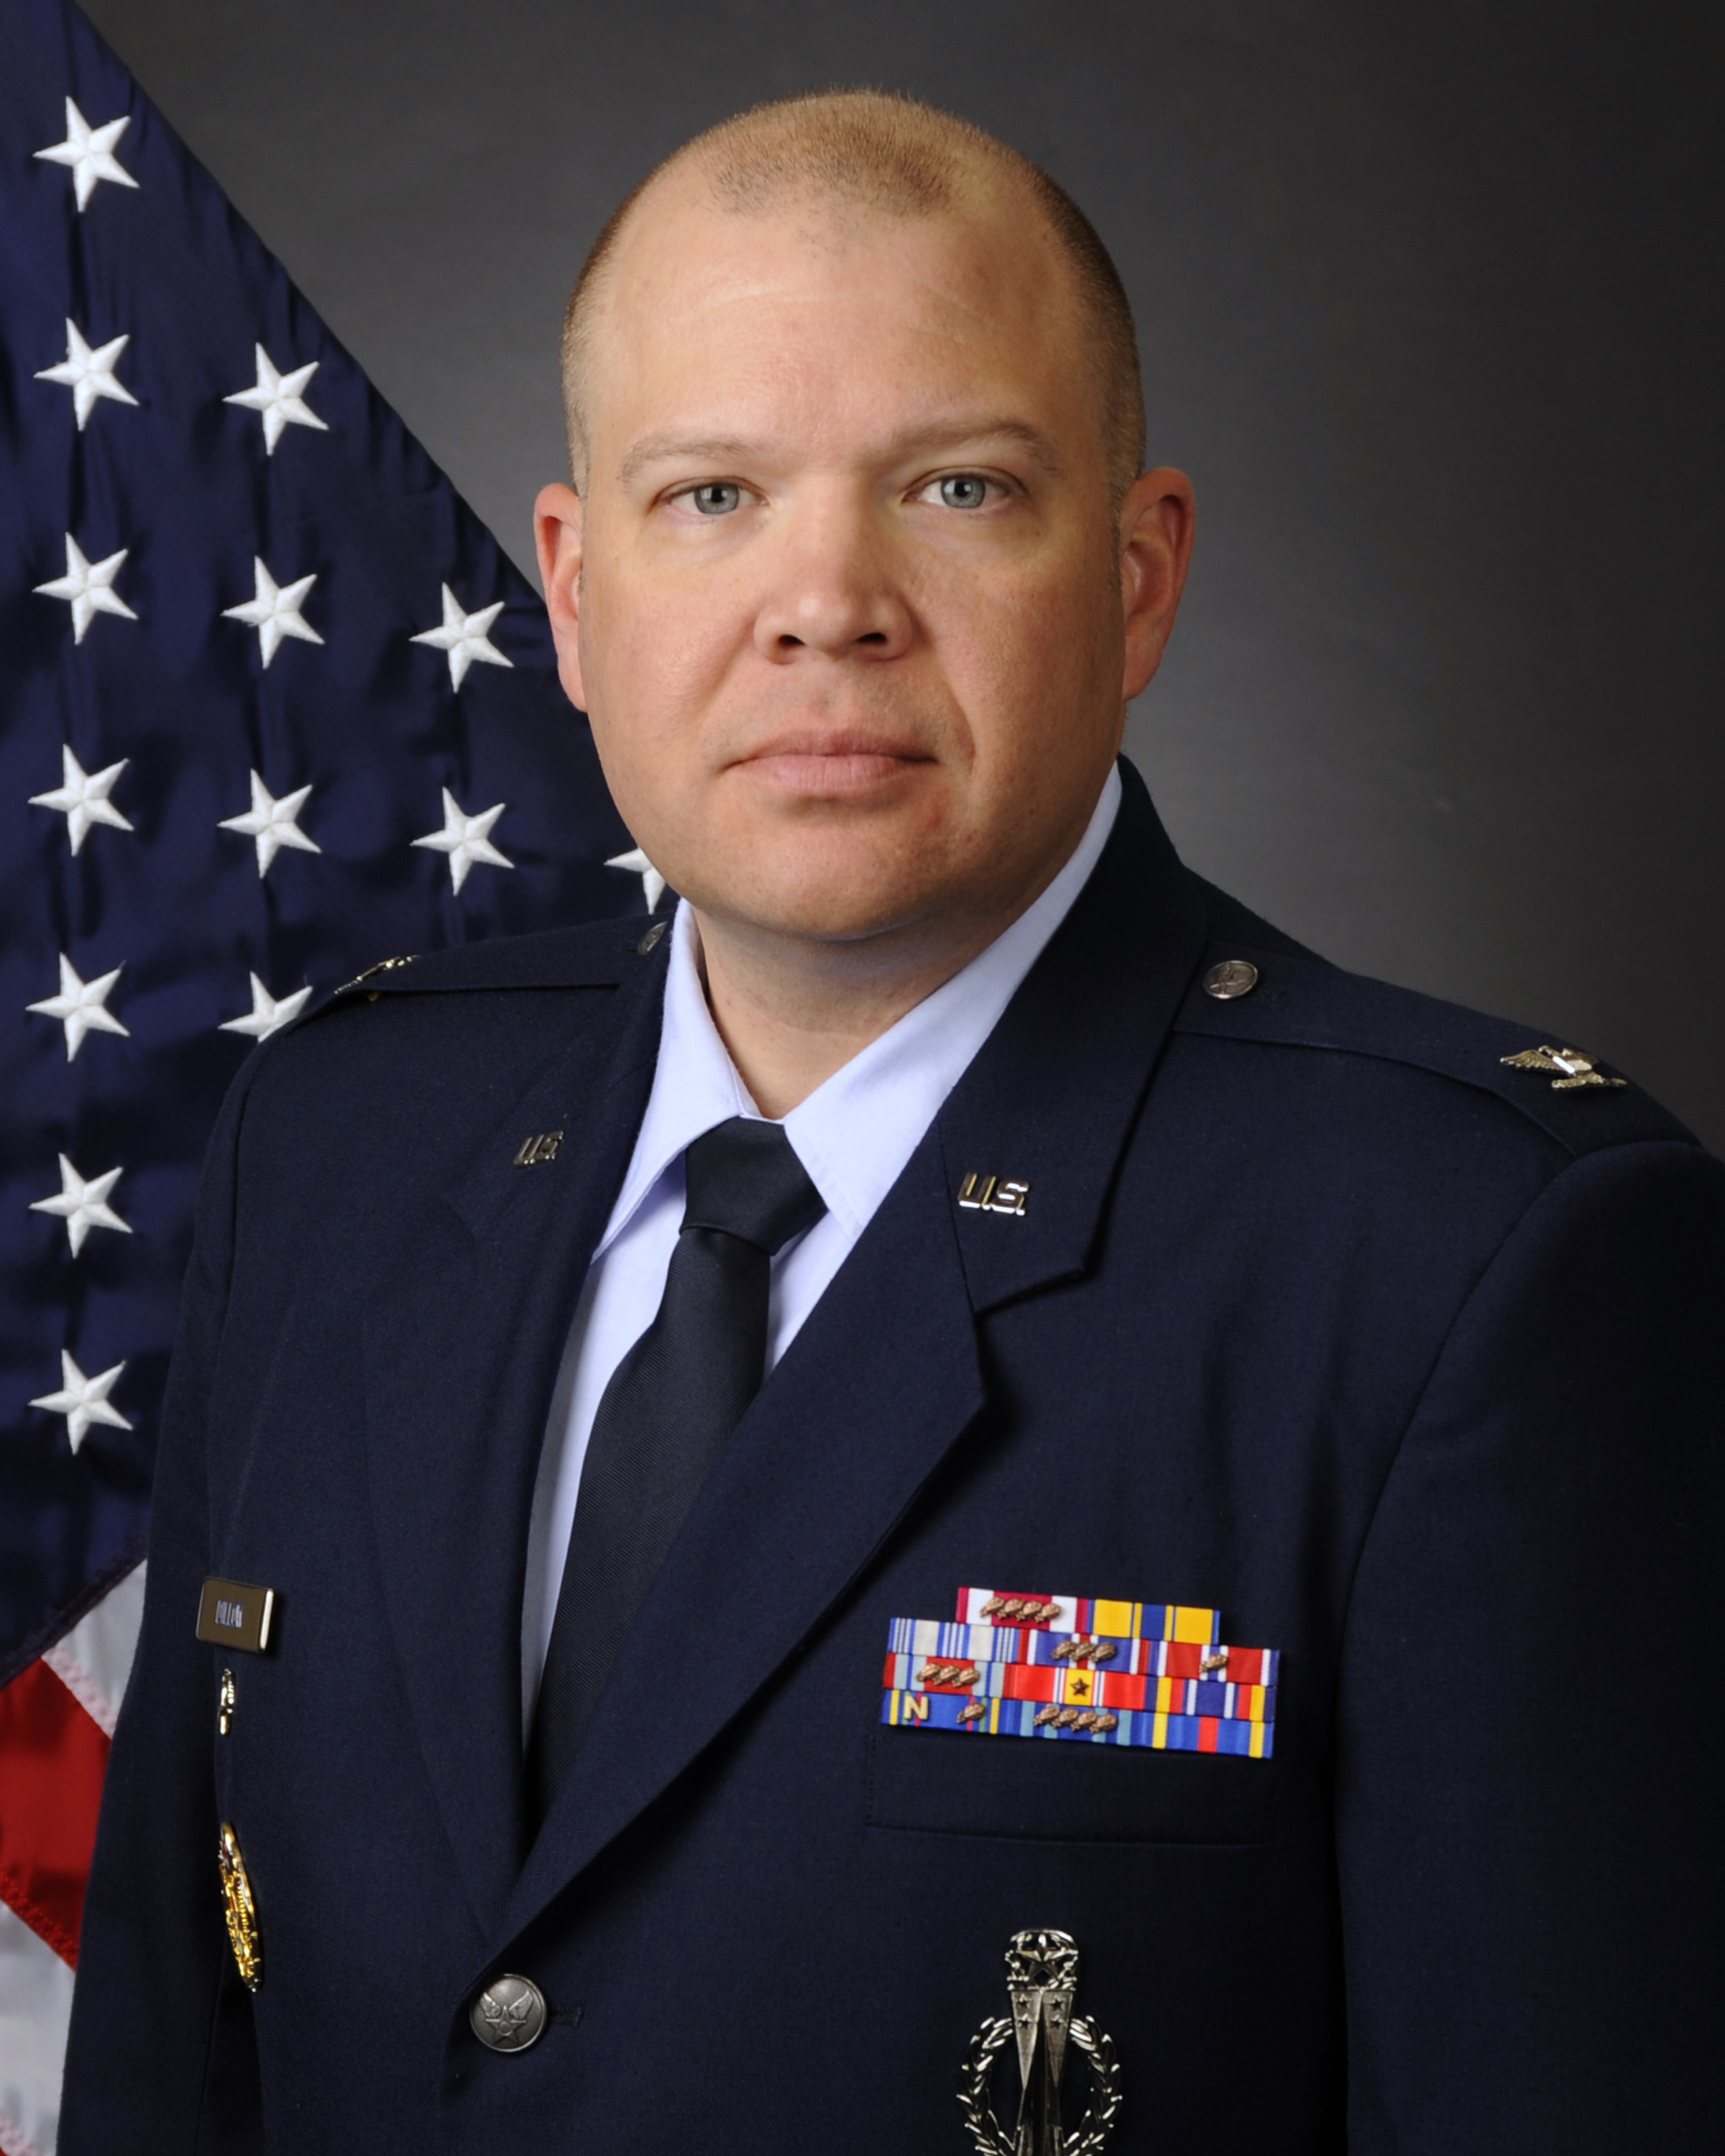 Col. Mathew Dillow, 90th Missile Wing Vice Commander